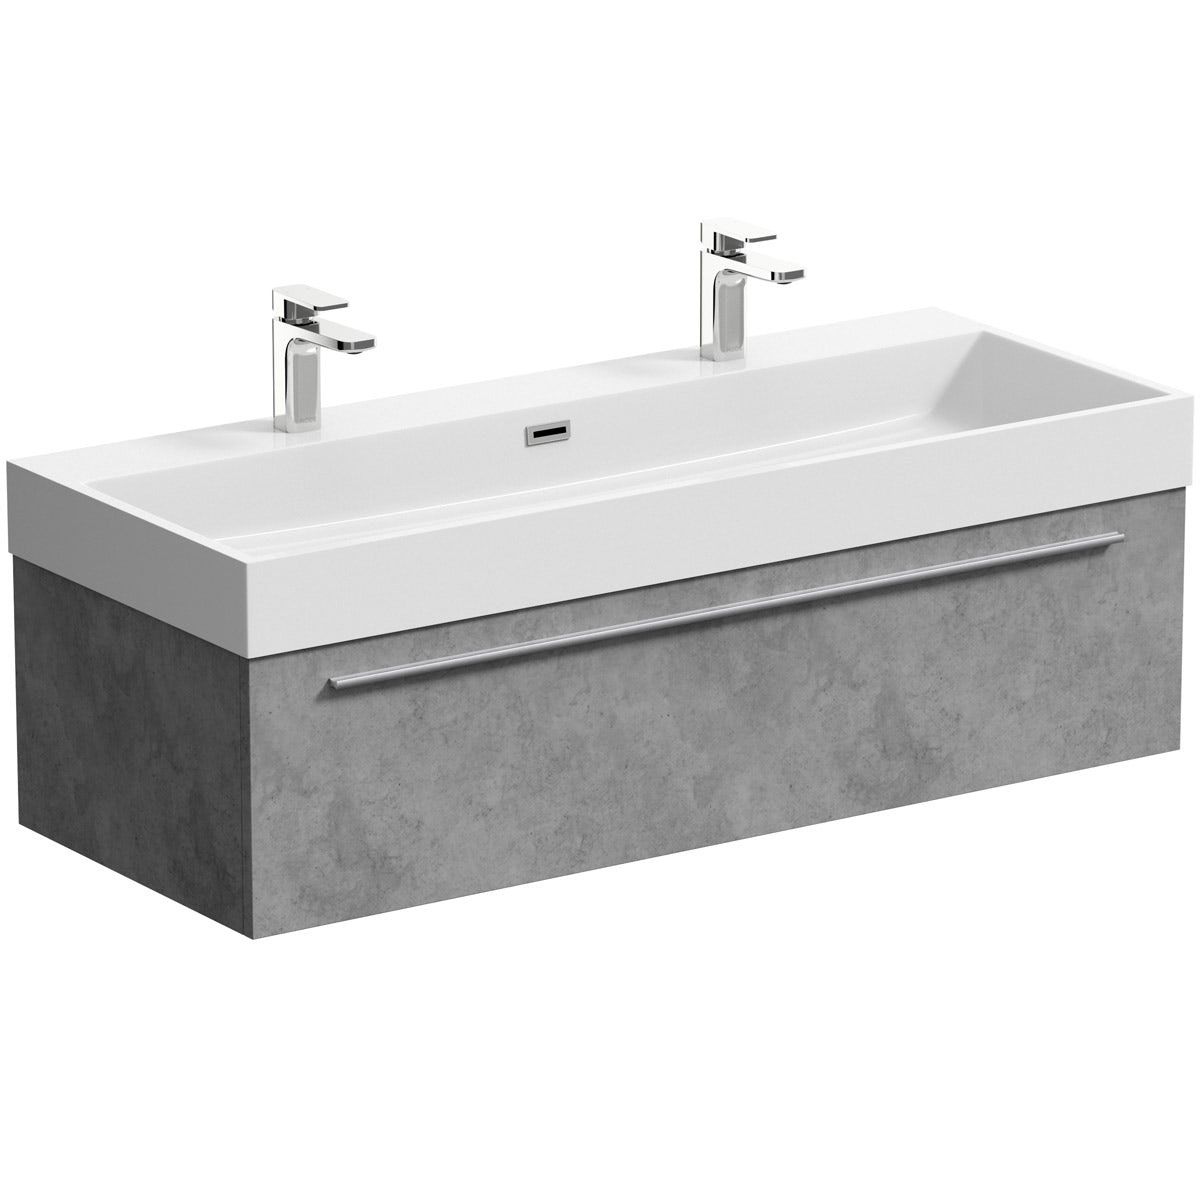 Mode Morris Dark Concrete Grey Wall Hung Vanity Unit And Basin 1200mm Wall Hung Vanity Wall Mounted Vanity Vanity Units